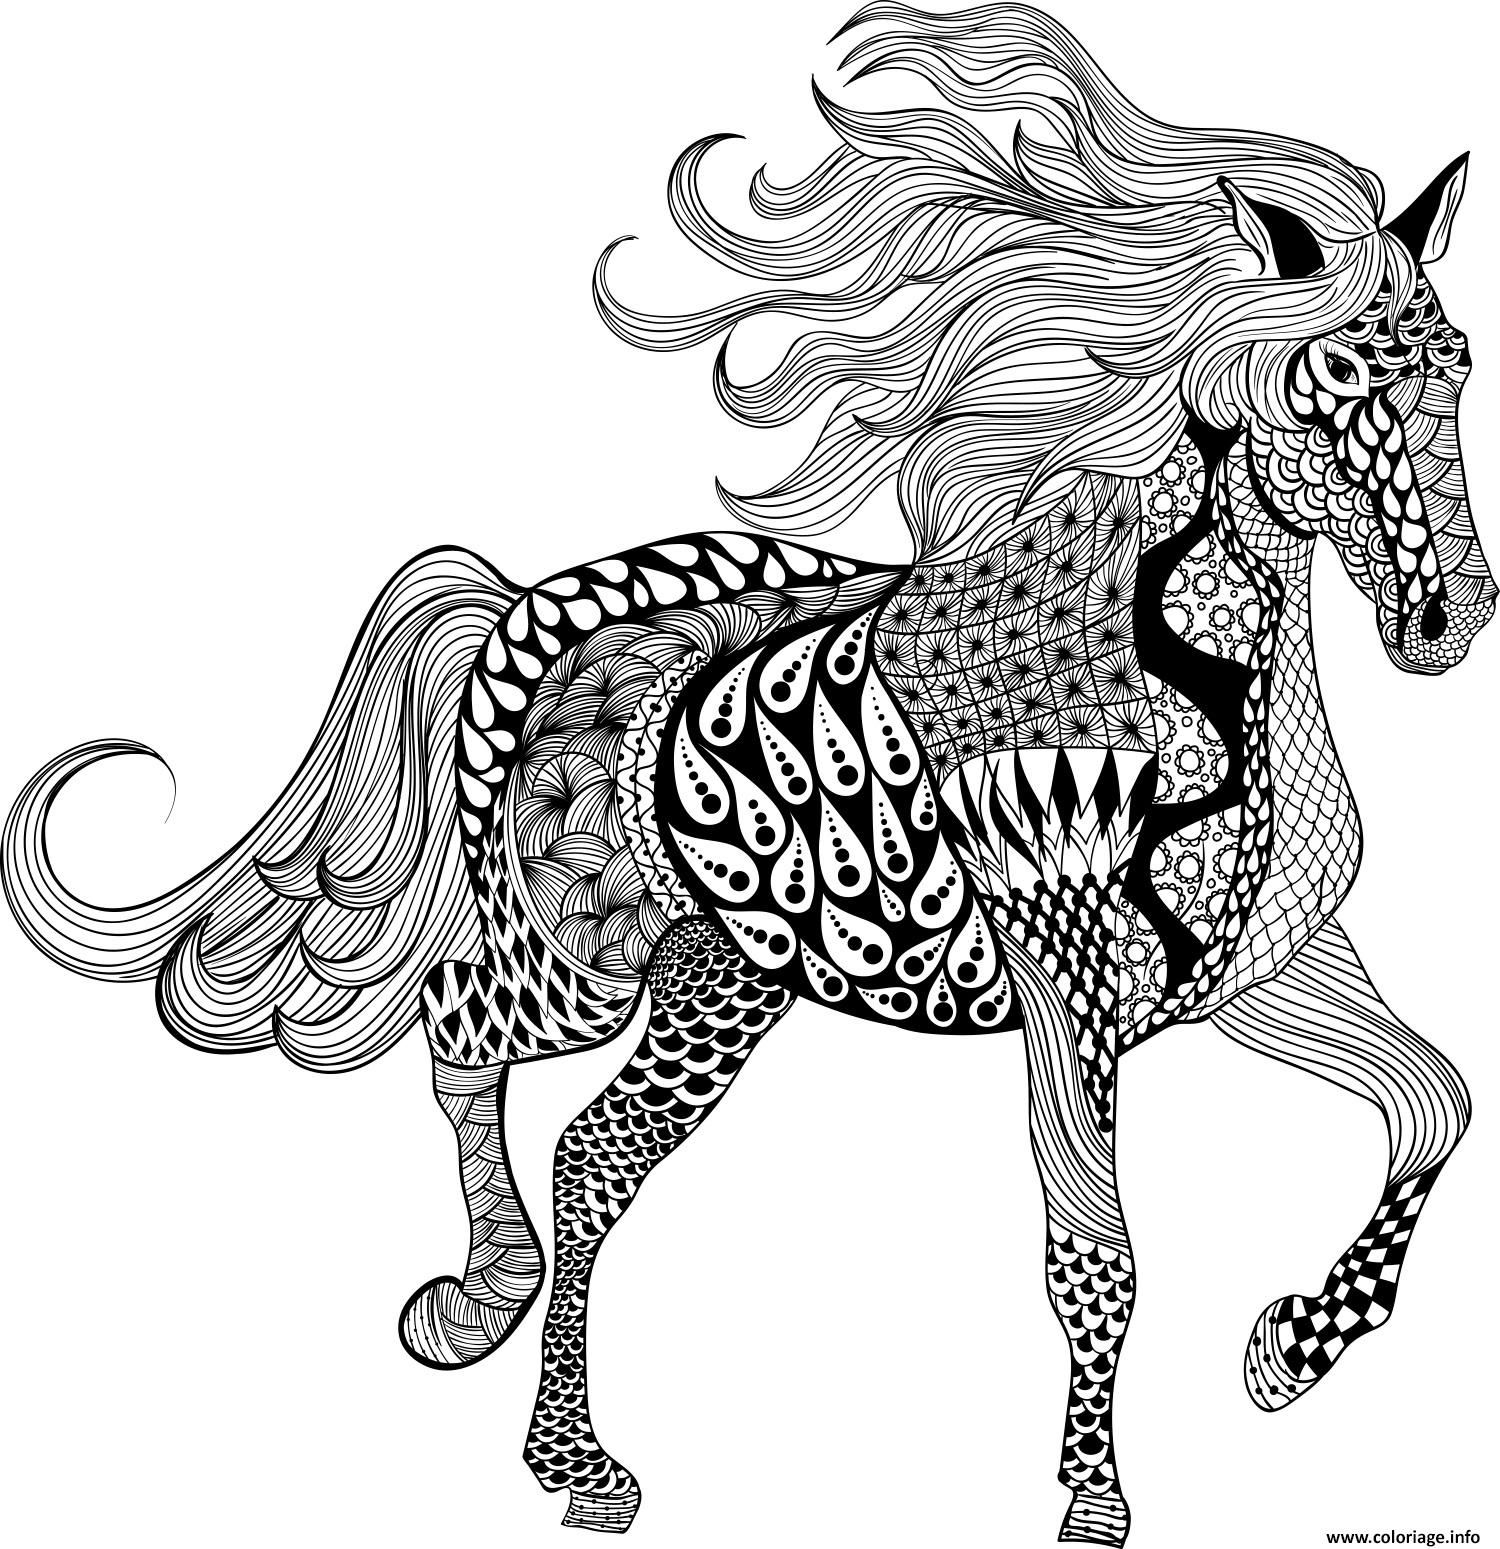 pin von joany lamproe auf coloring pages | malvorlagen